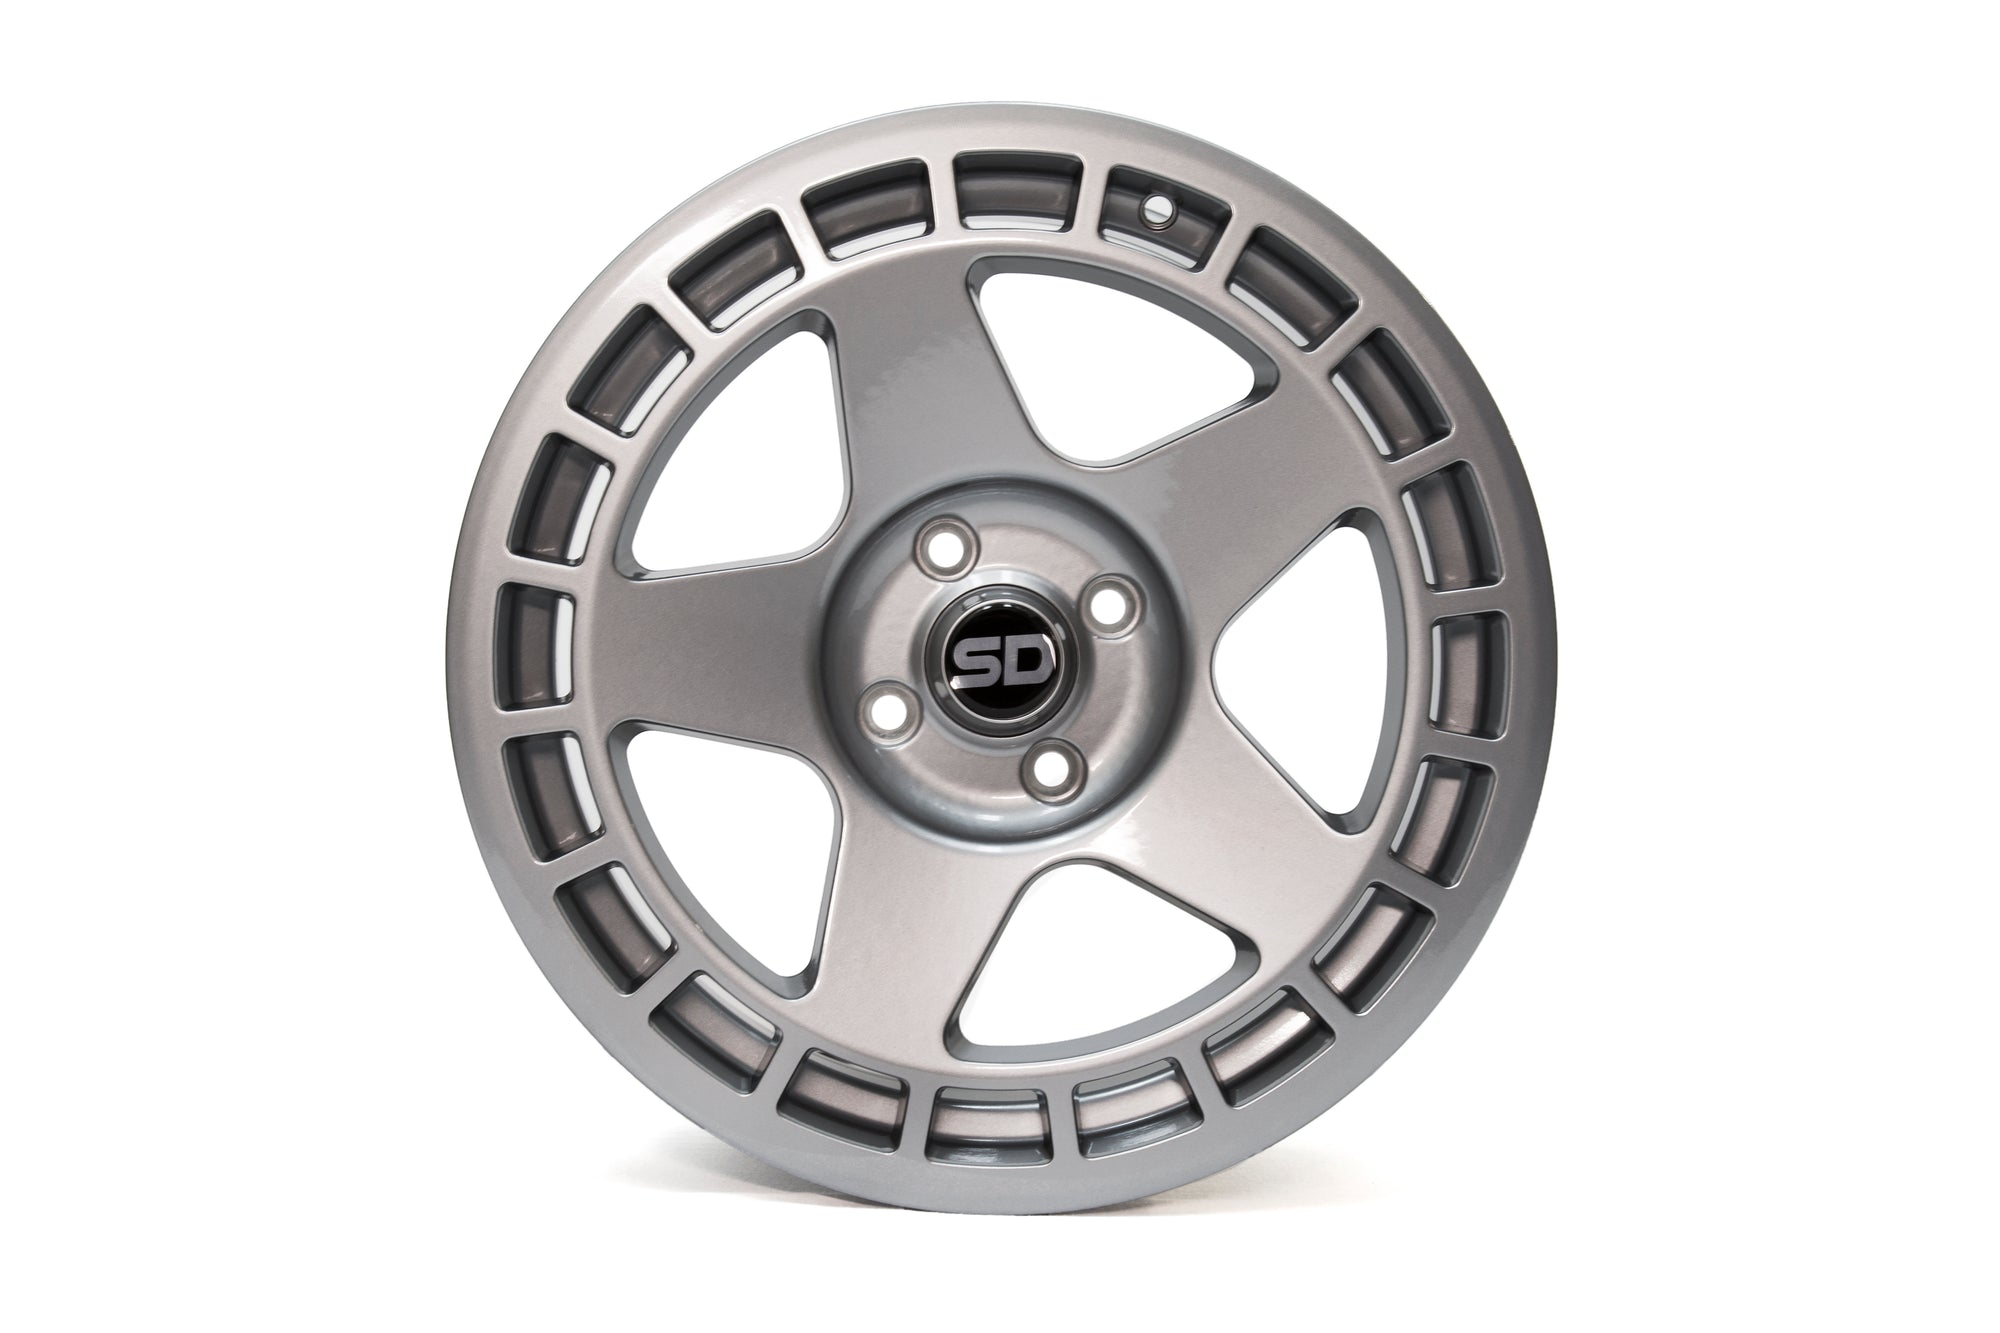 DNT 17*7.5 ET40 4x108 Gloss Gunmetal Grey wheels